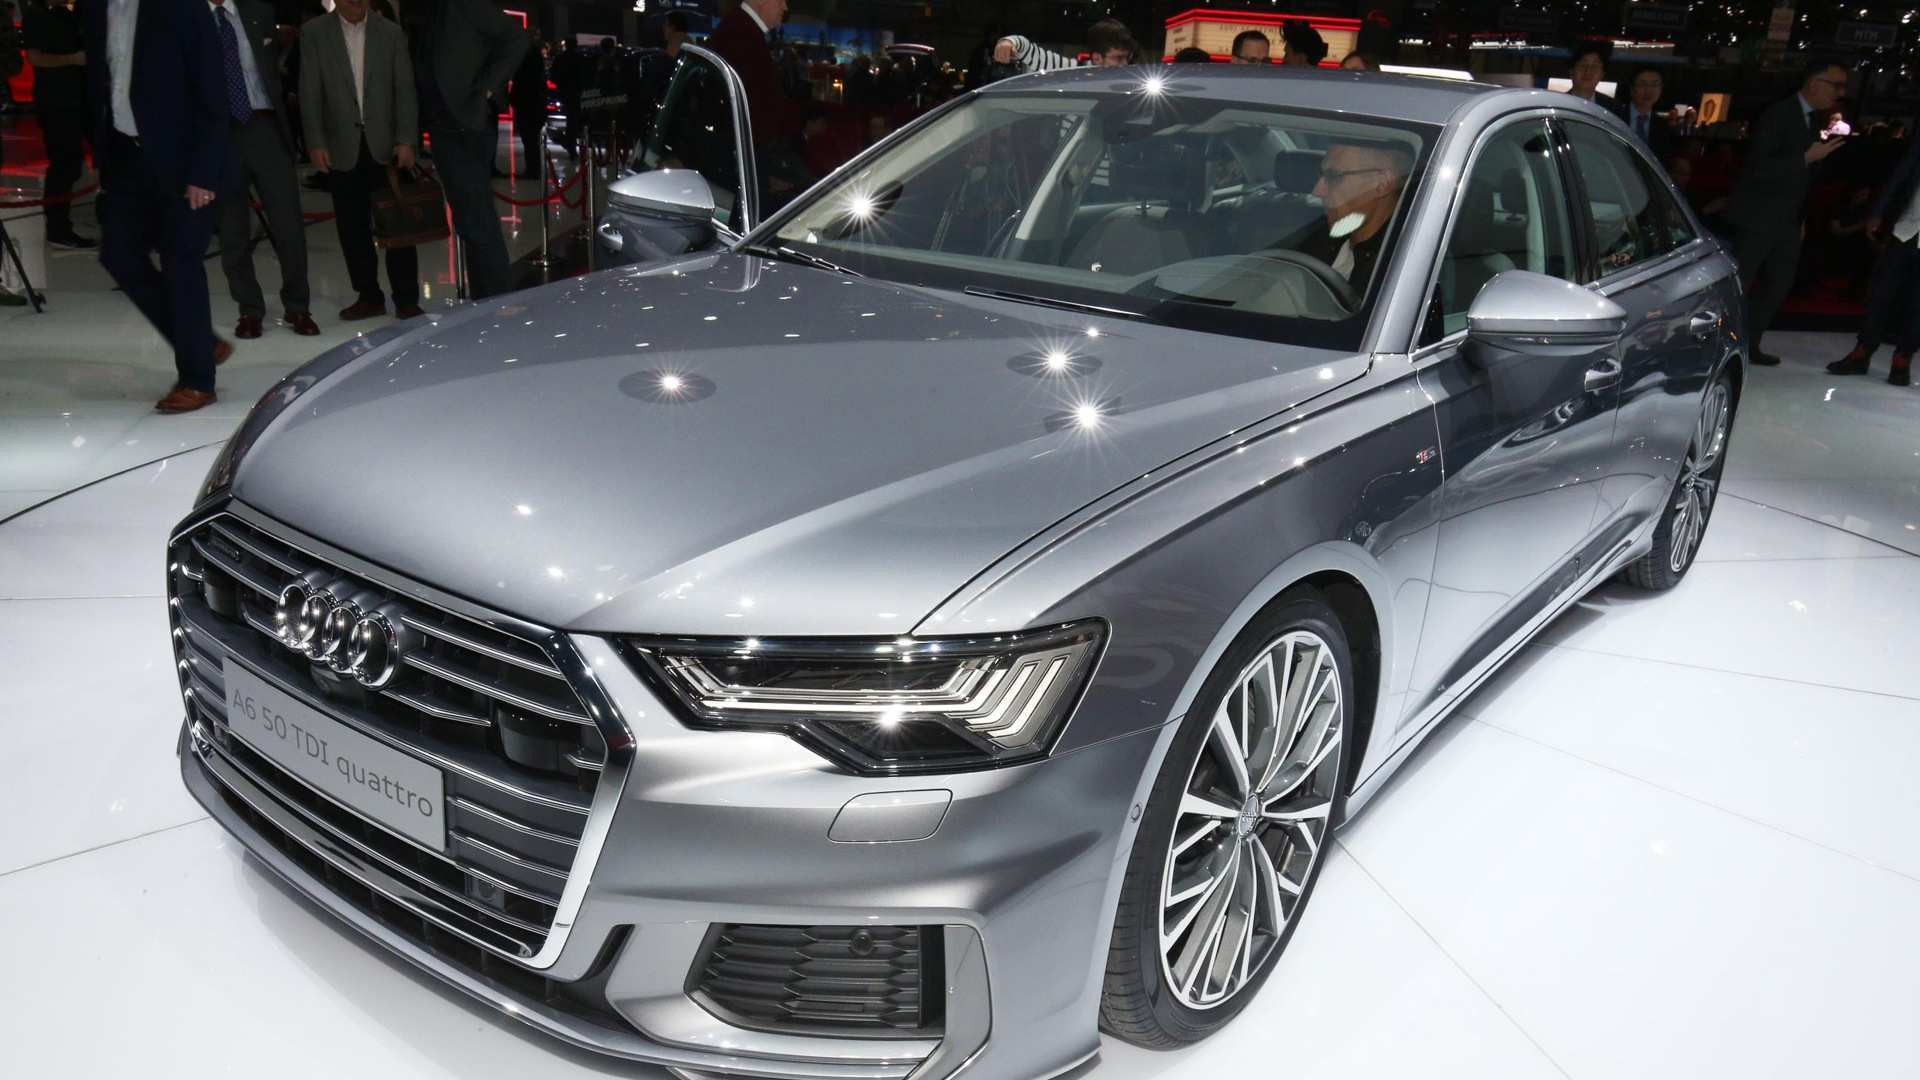 75 The 2020 Audi A6 2018 Specs with 2020 Audi A6 2018